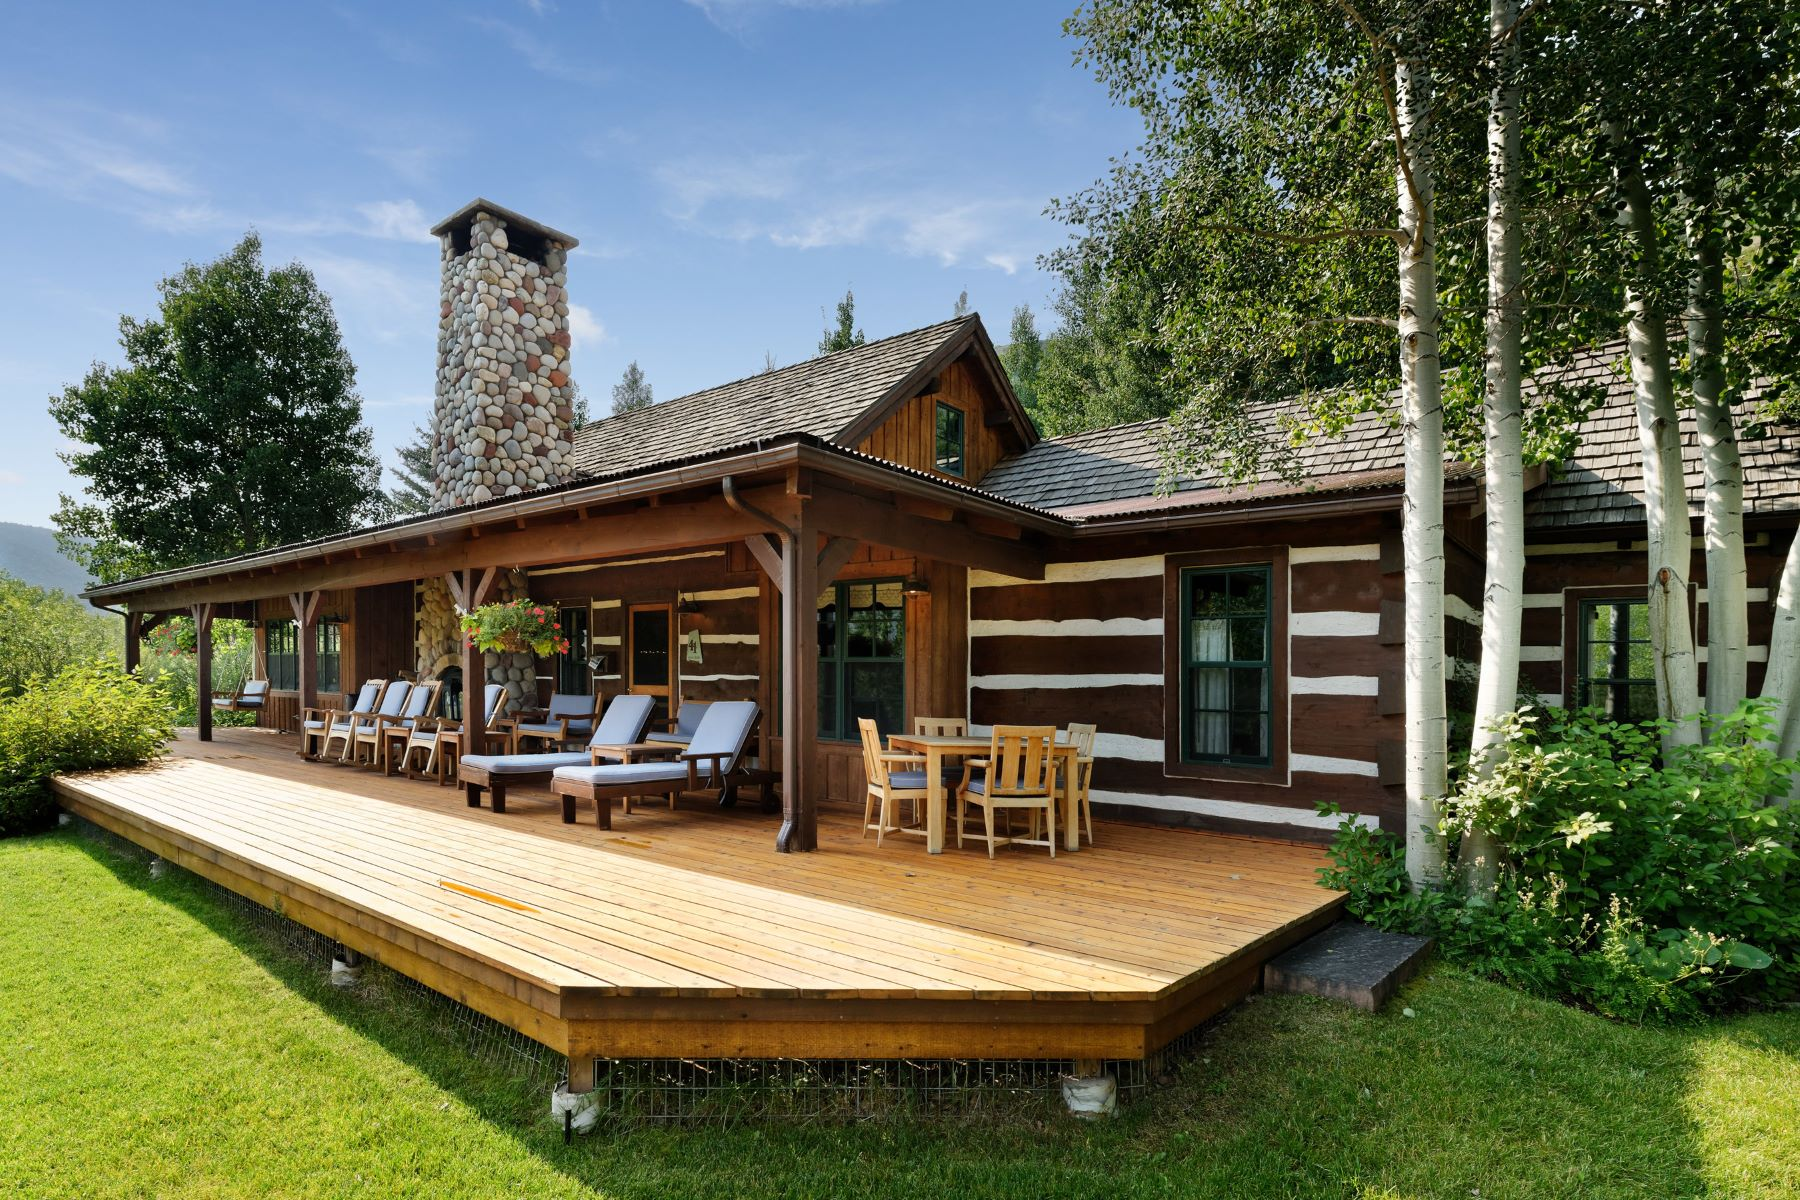 """Single Family Home for Active at The """"Waterfall"""" Cabin 41 Altamira Ranch Road Basalt, Colorado 81621 United States"""